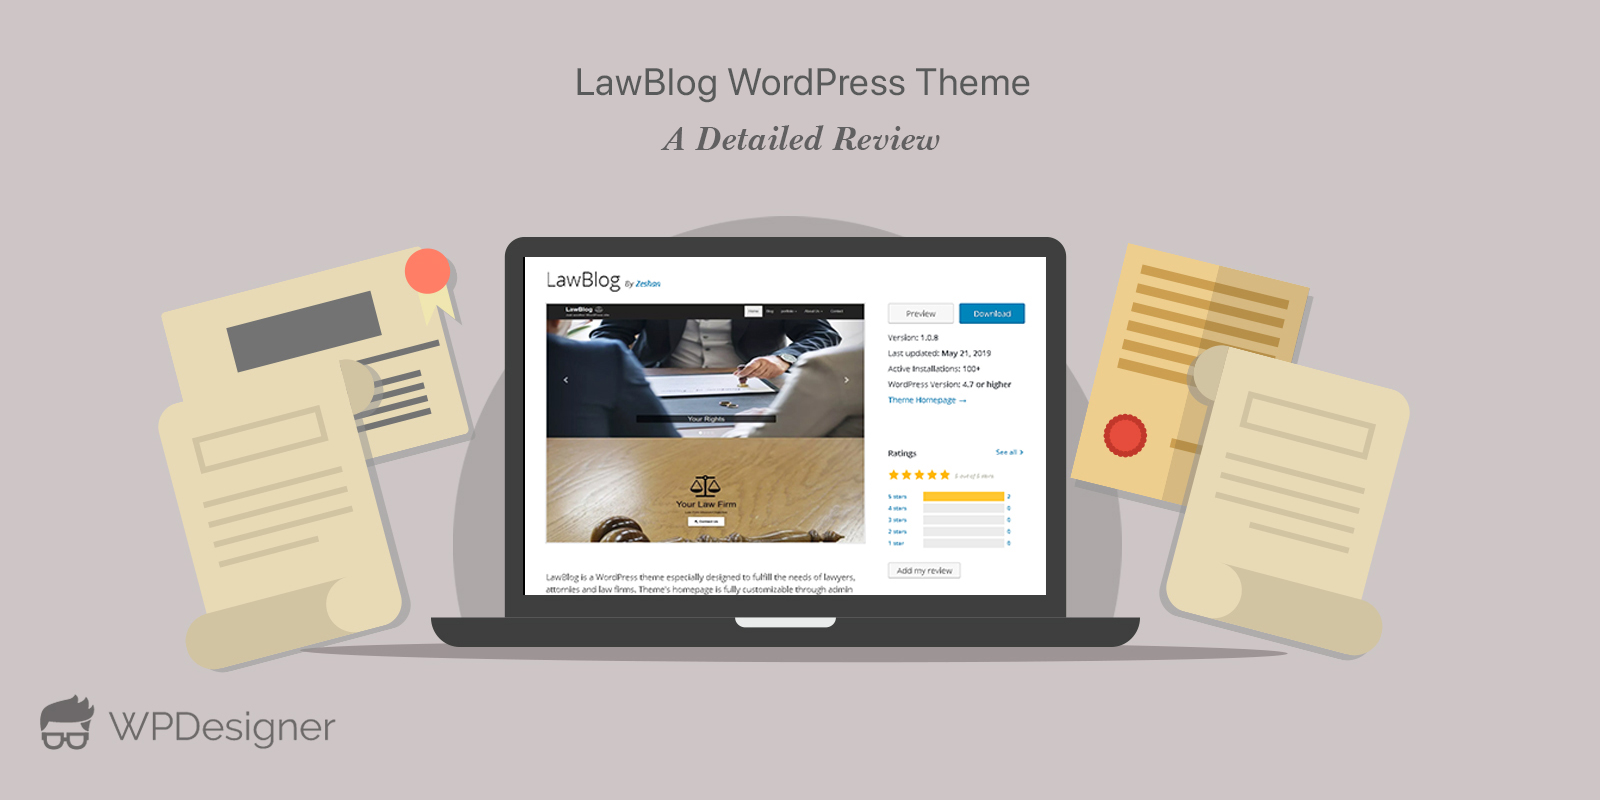 LawBlog theme review by WpDesigner